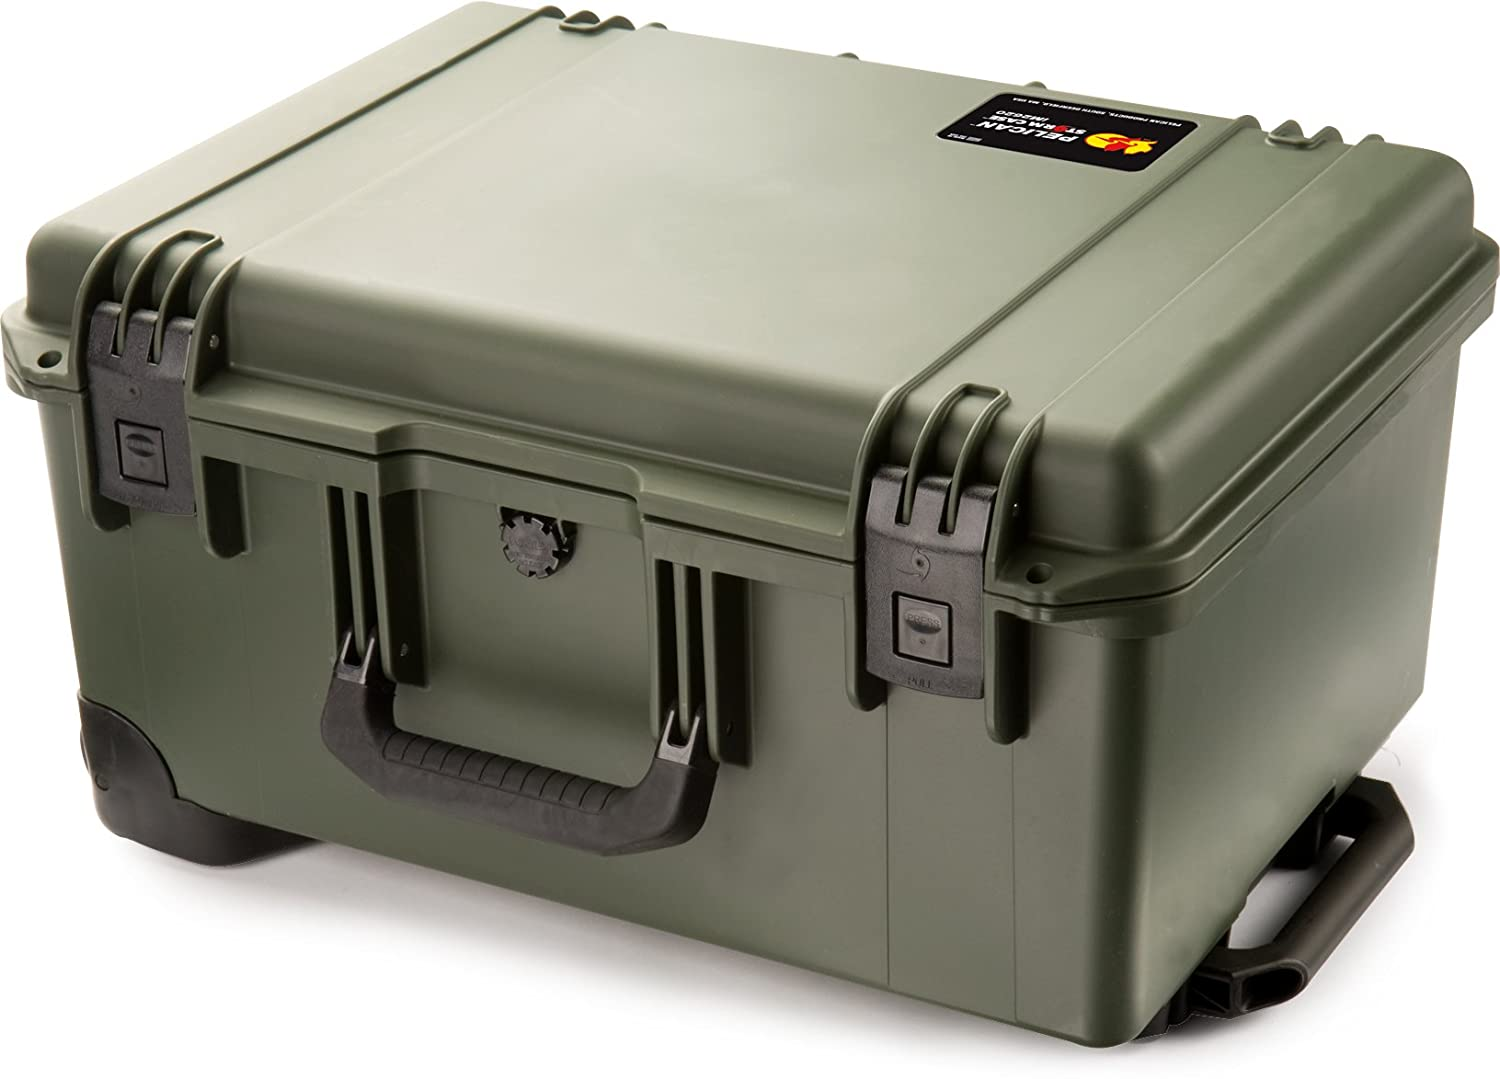 Pelican iM2620 OD Green with foam & TSA lock.